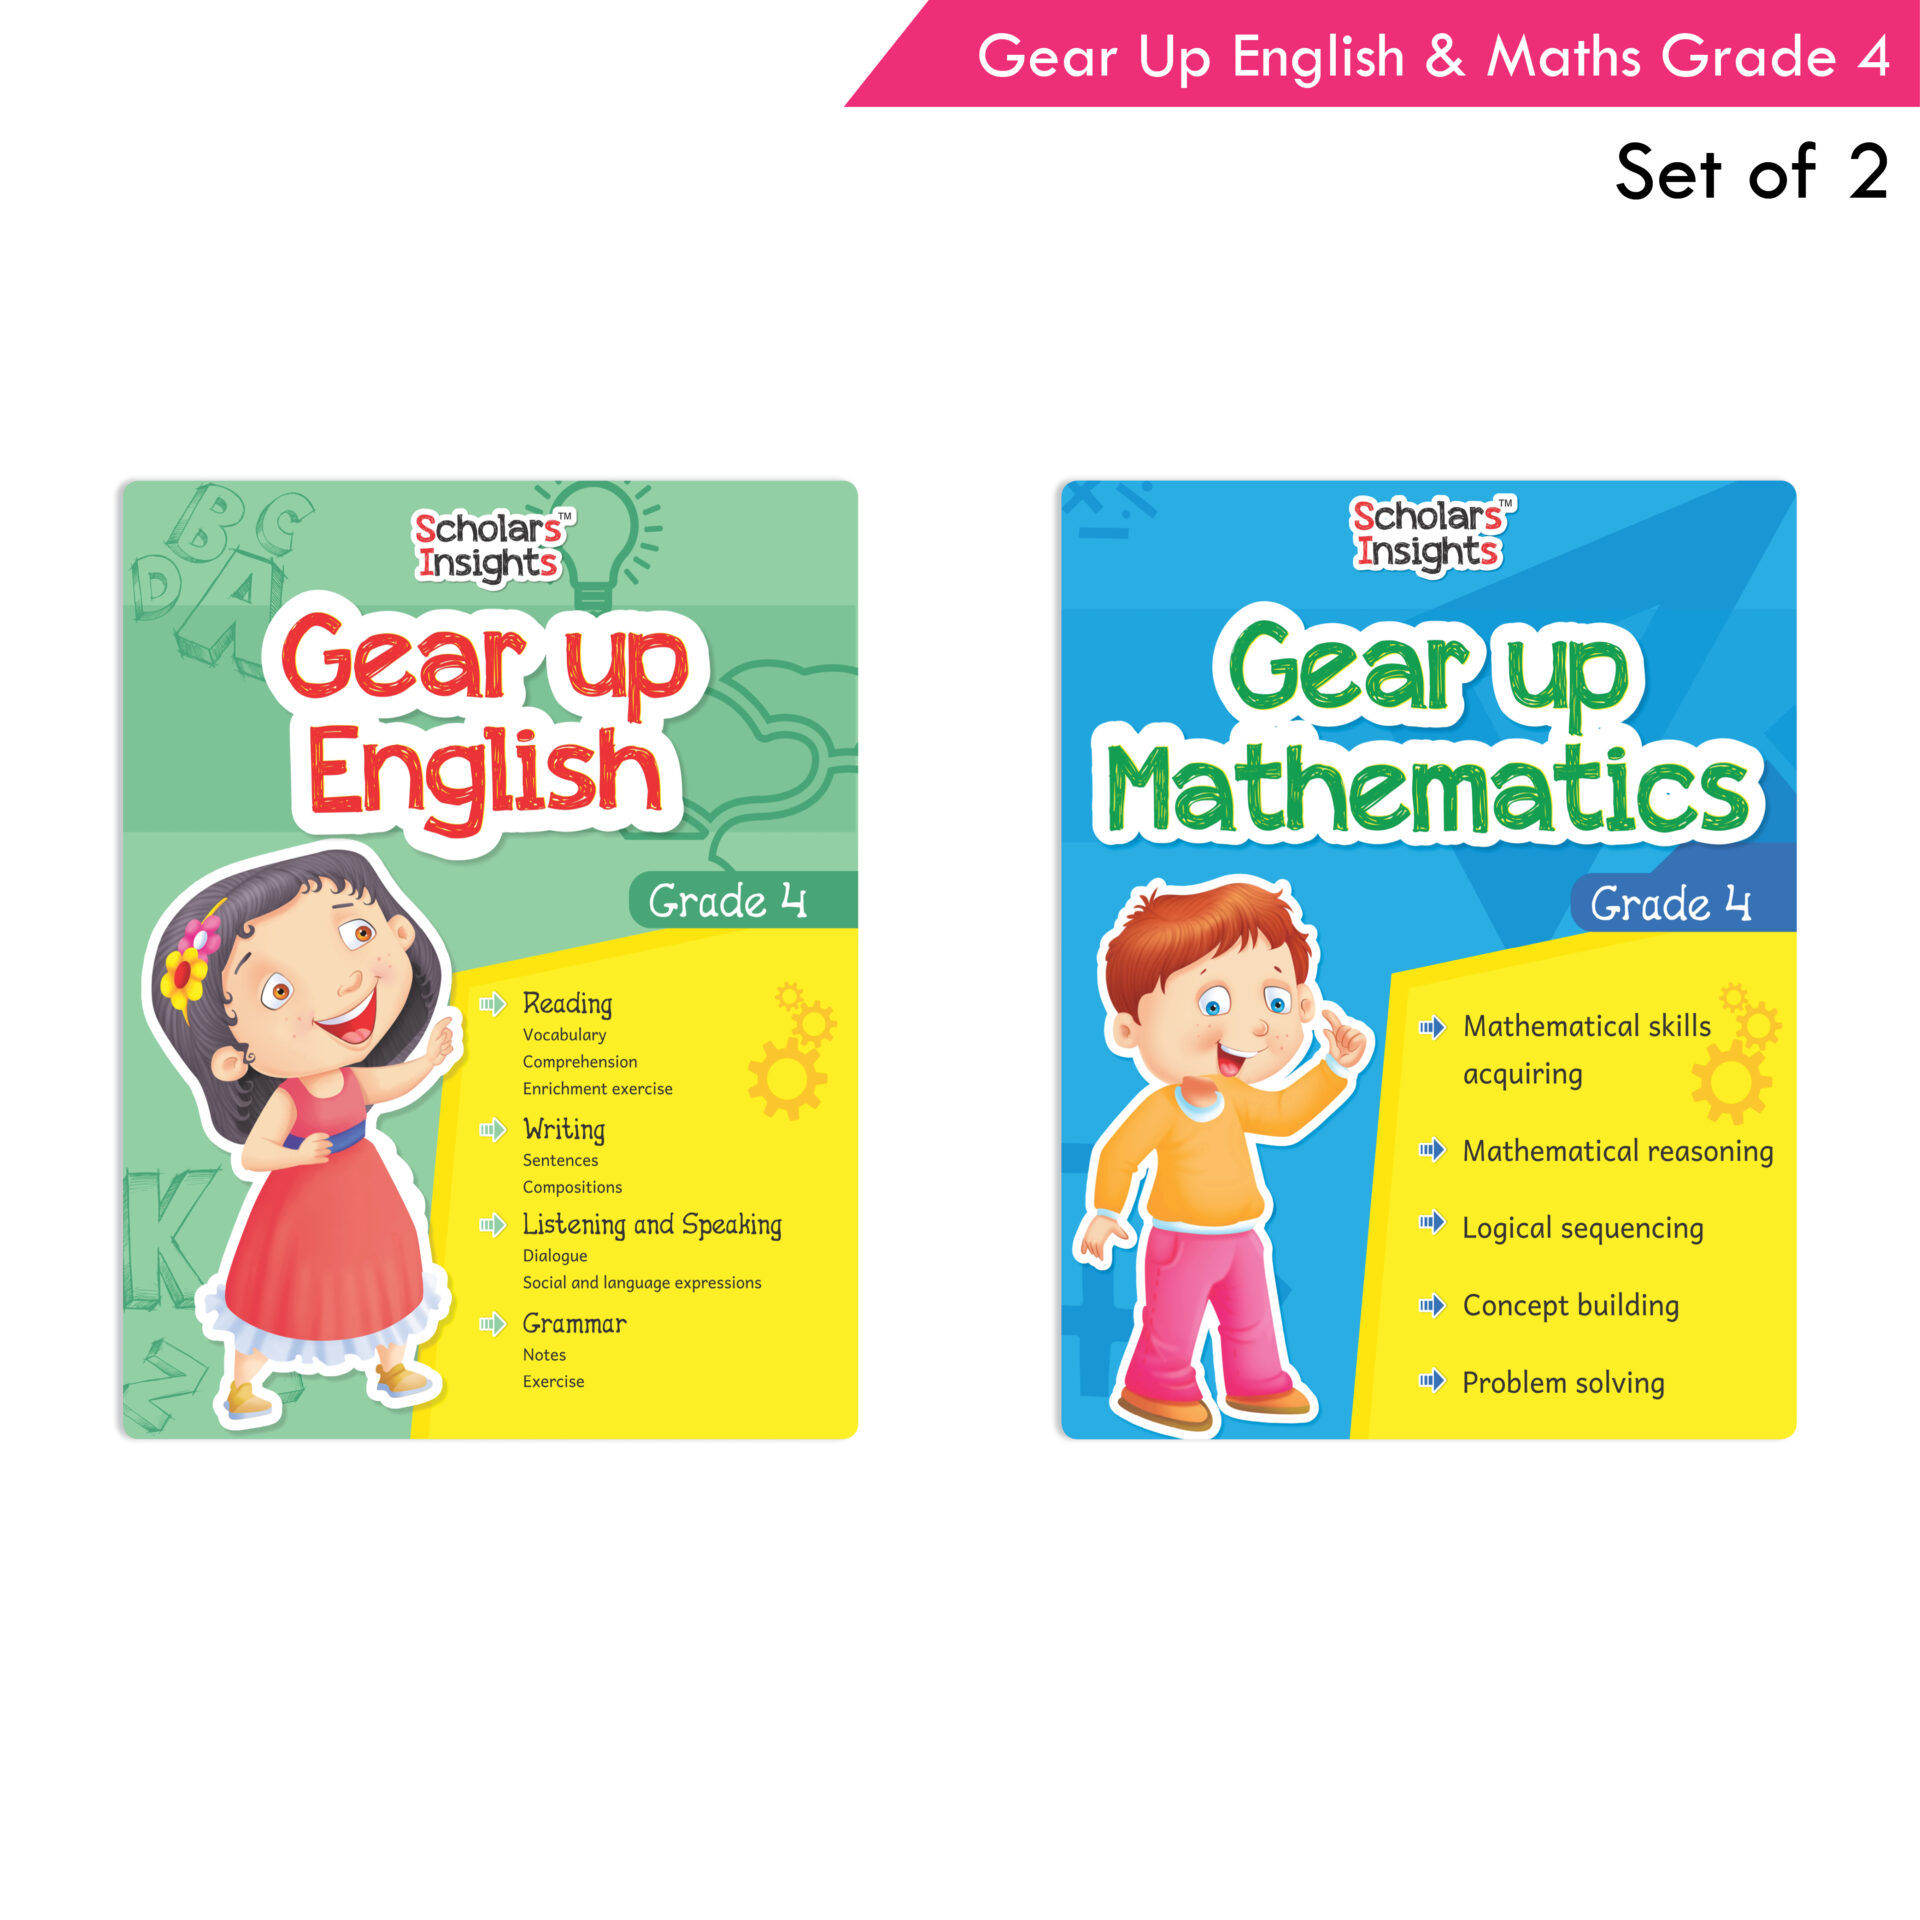 Scholars Insights Gear Up English and Maths Grade 4 Set of 2 1